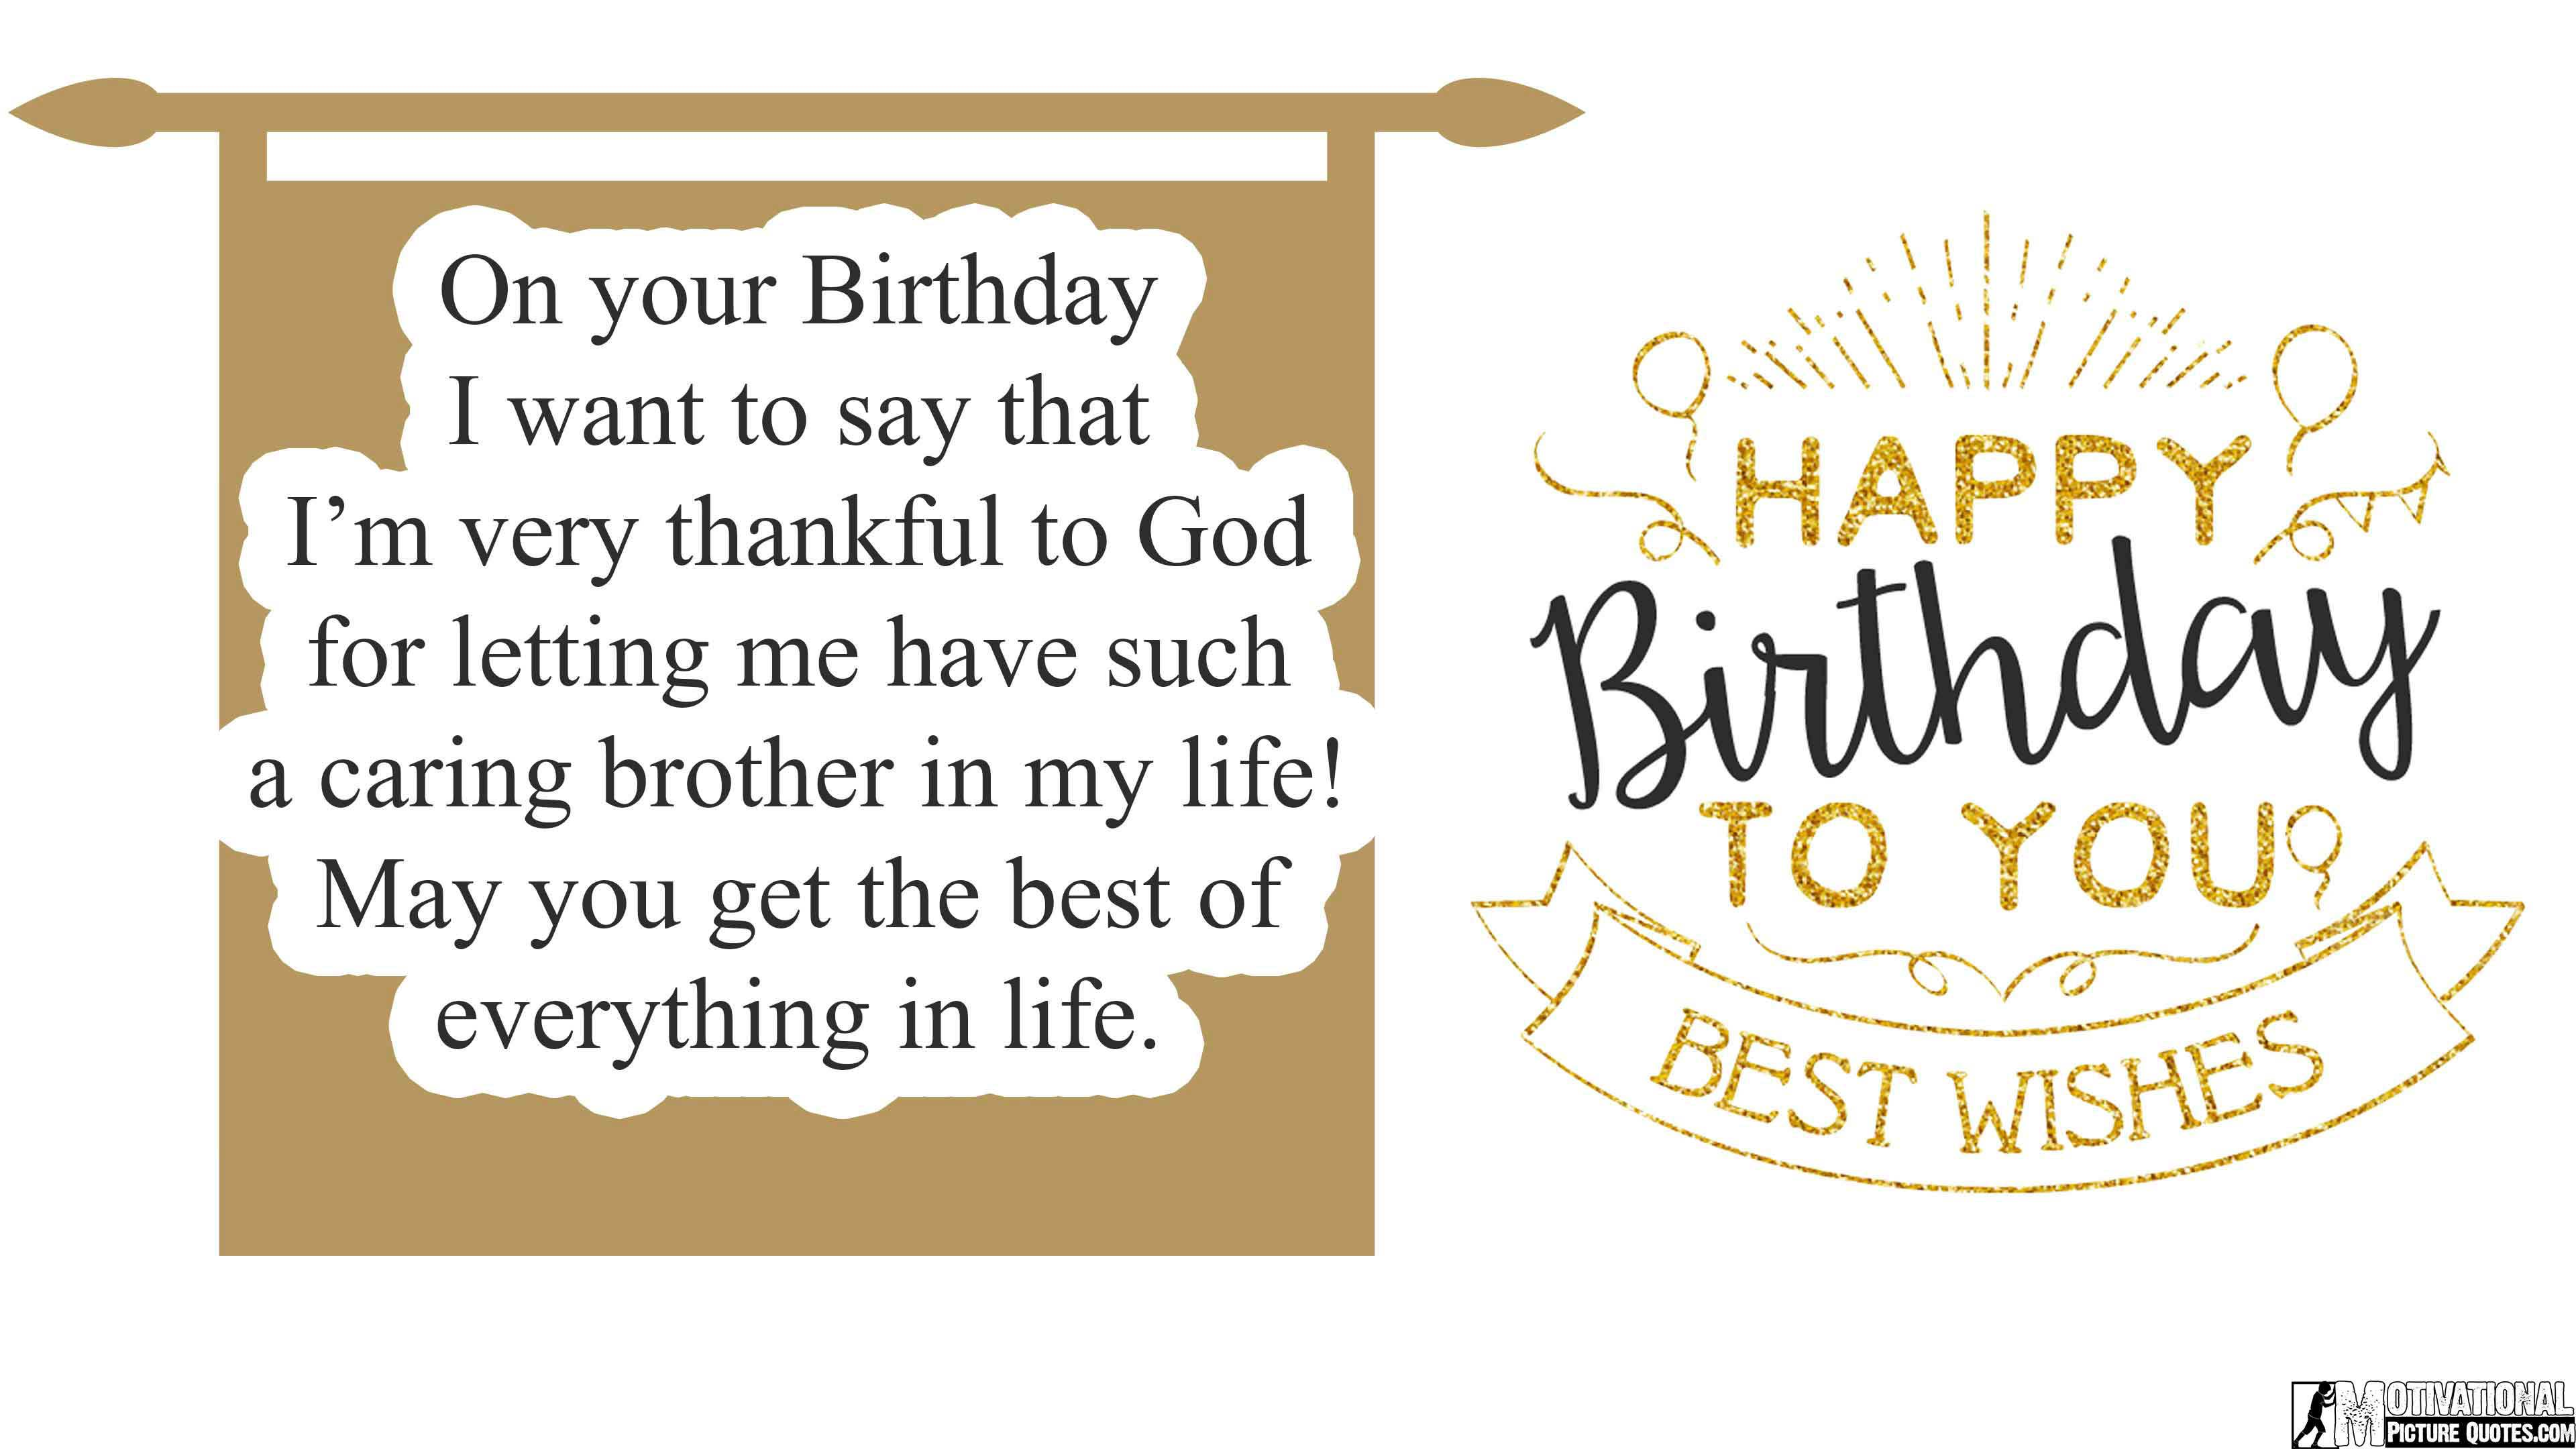 35 inspirational birthday quotes images insbright birthday messages for brother from sister kristyandbryce Image collections